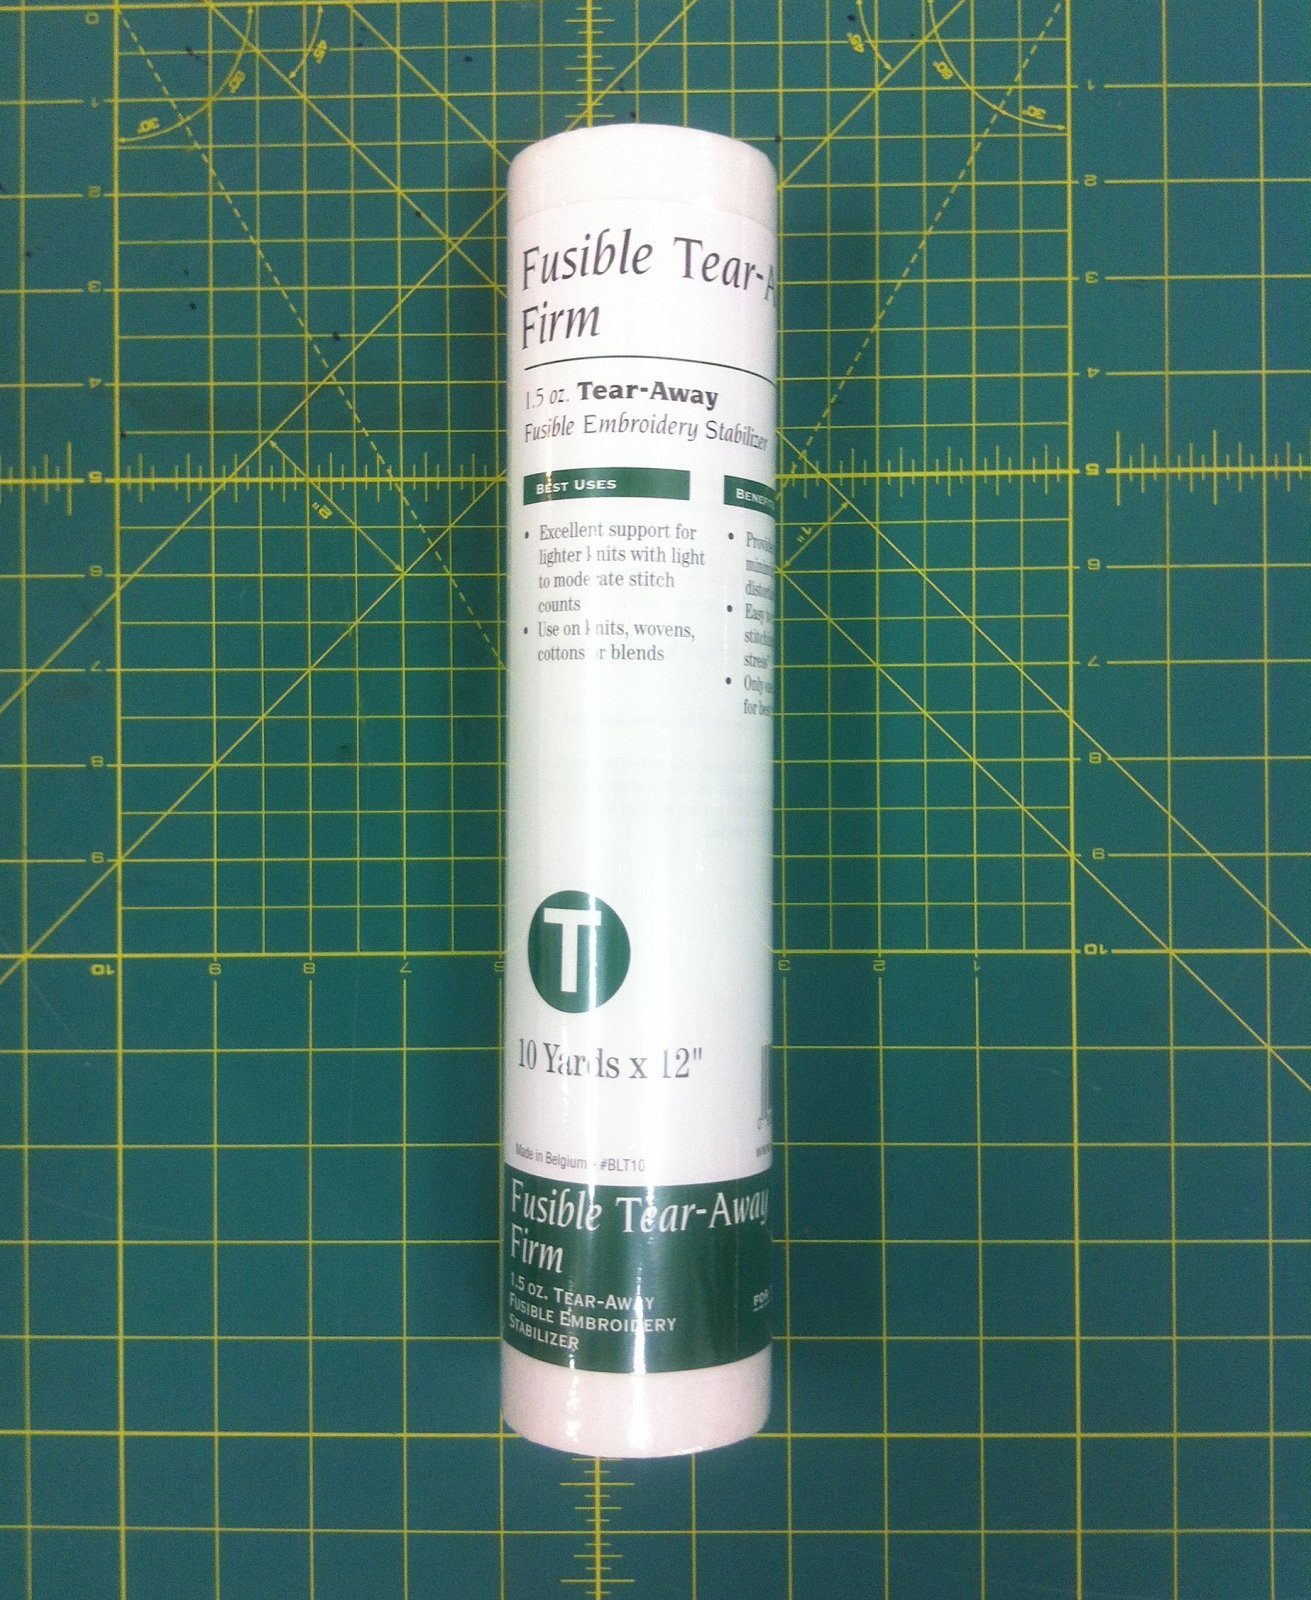 Fusible Tear-Away Firm